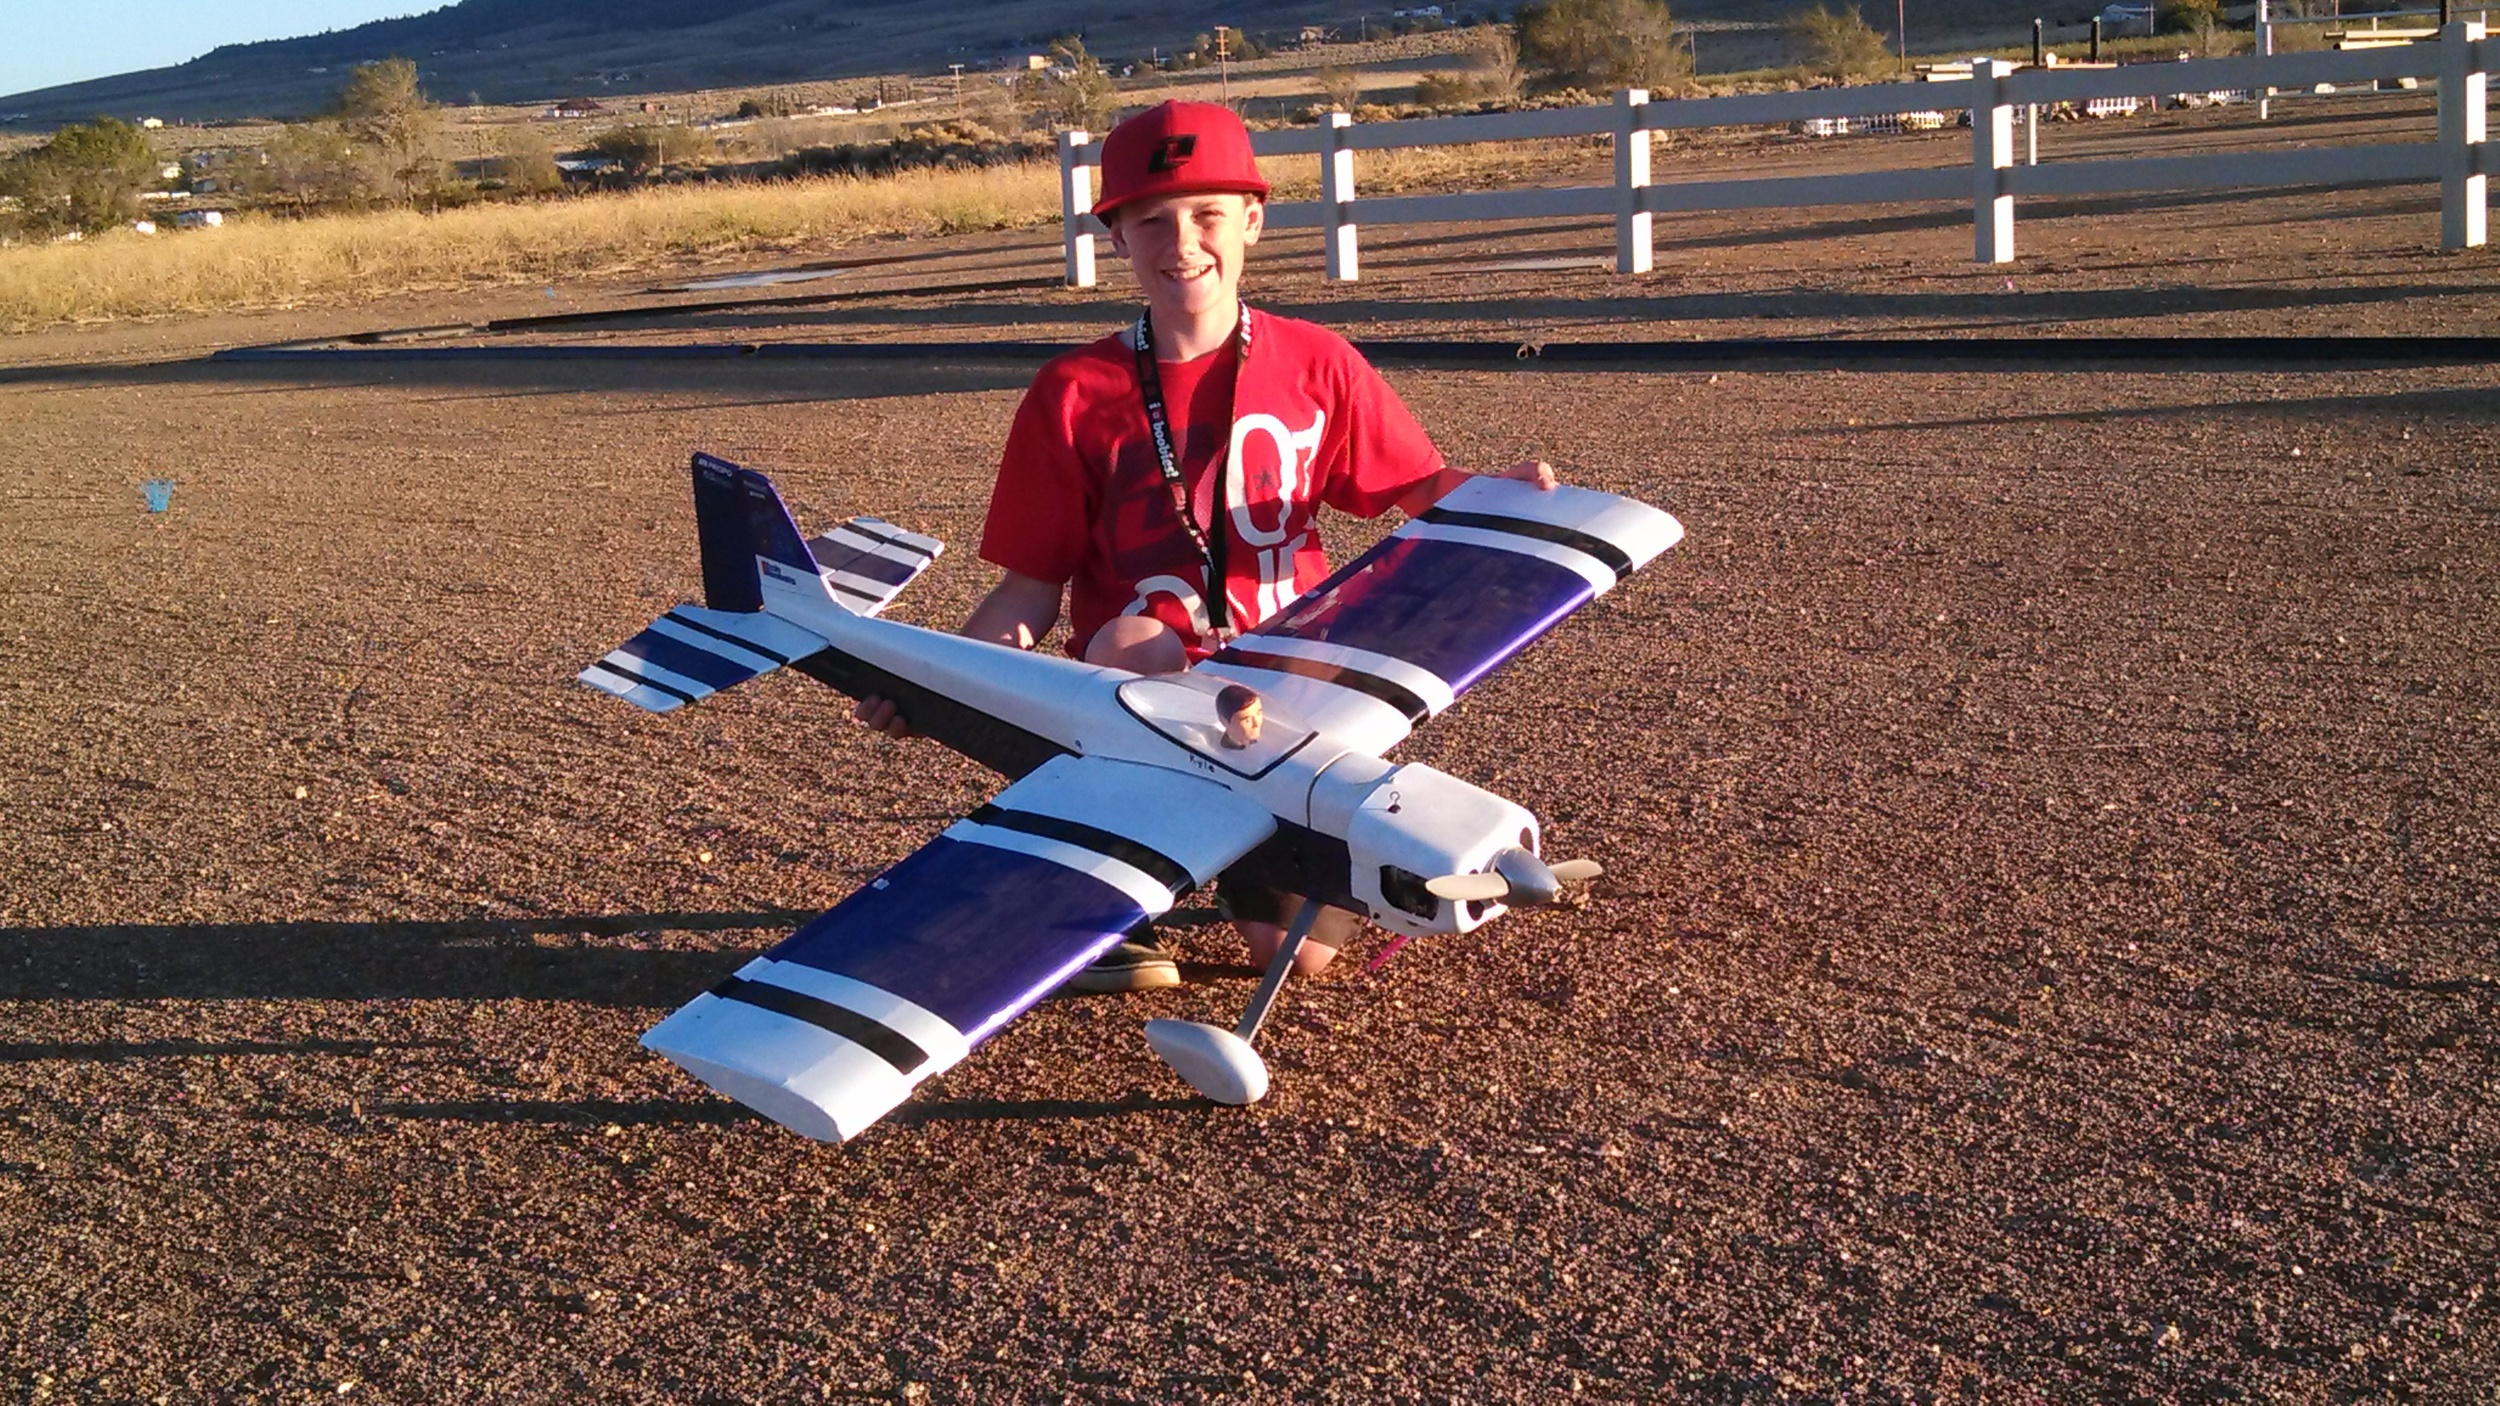 Tehachapi Crosswinds RC Club is proud of your progress, Kyle. Beautiful job building and flying!